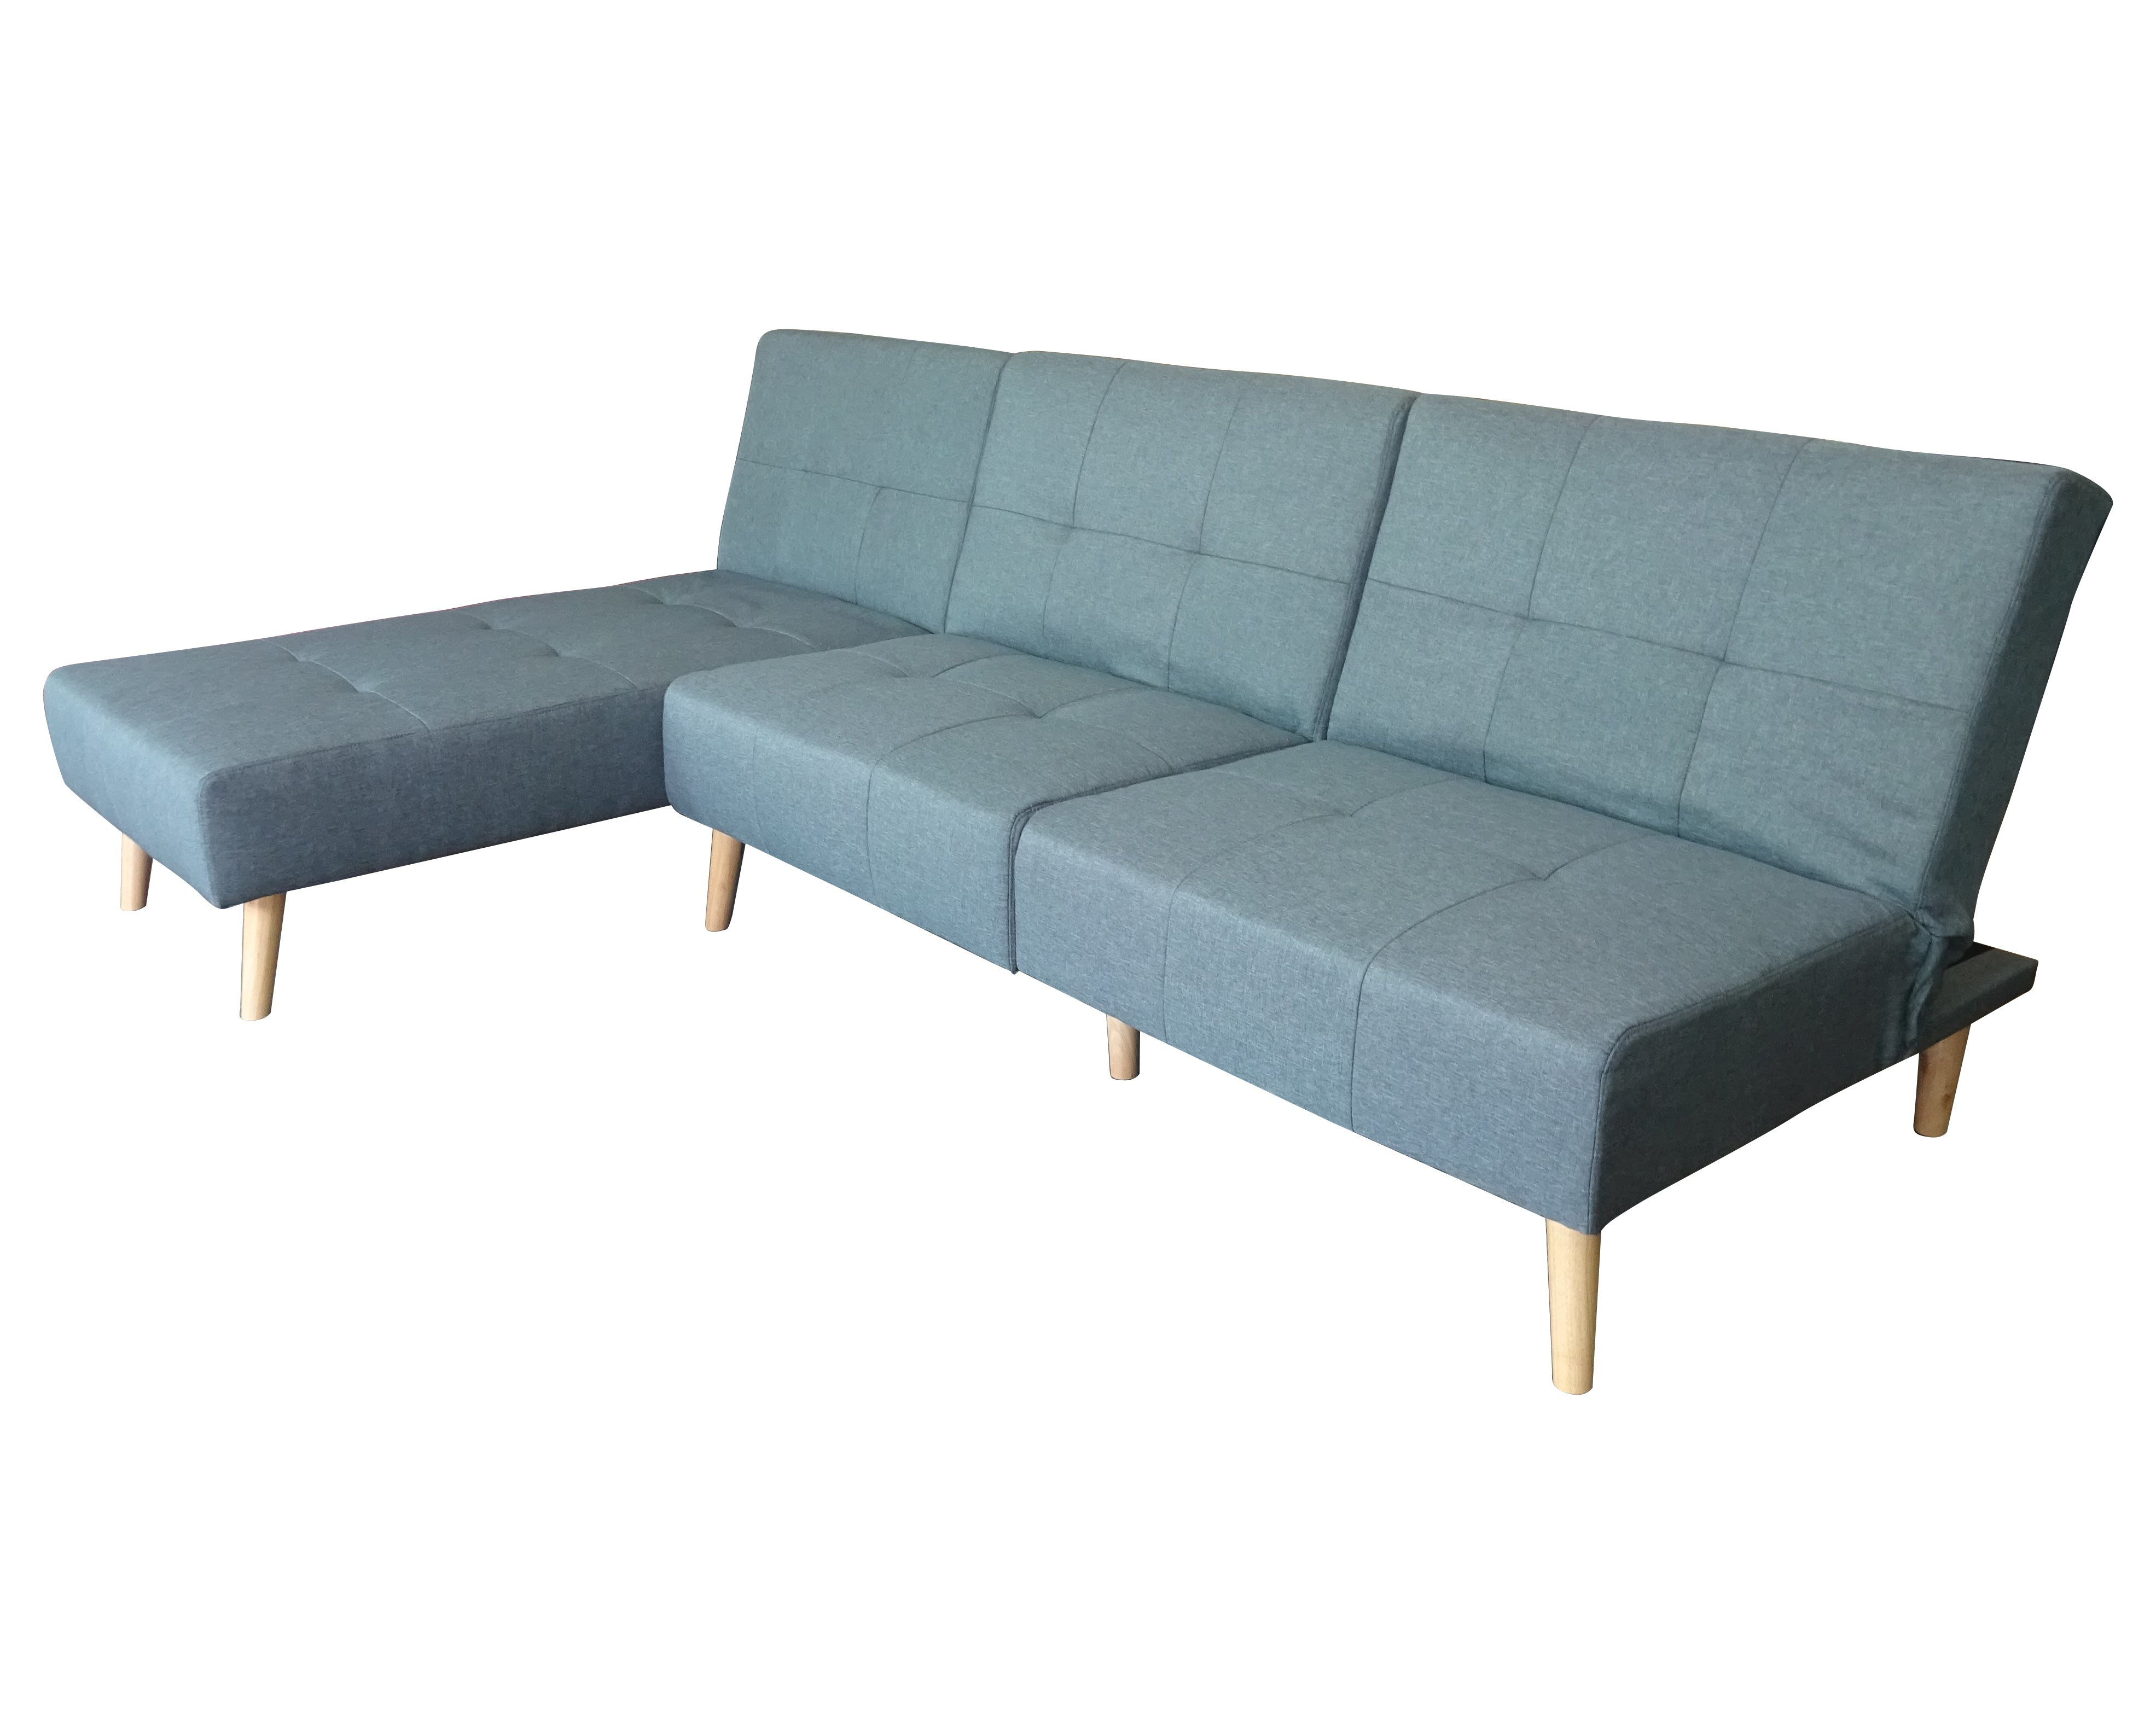 Superb Sofa Corner Lounge Boston Hotshoppa Caraccident5 Cool Chair Designs And Ideas Caraccident5Info